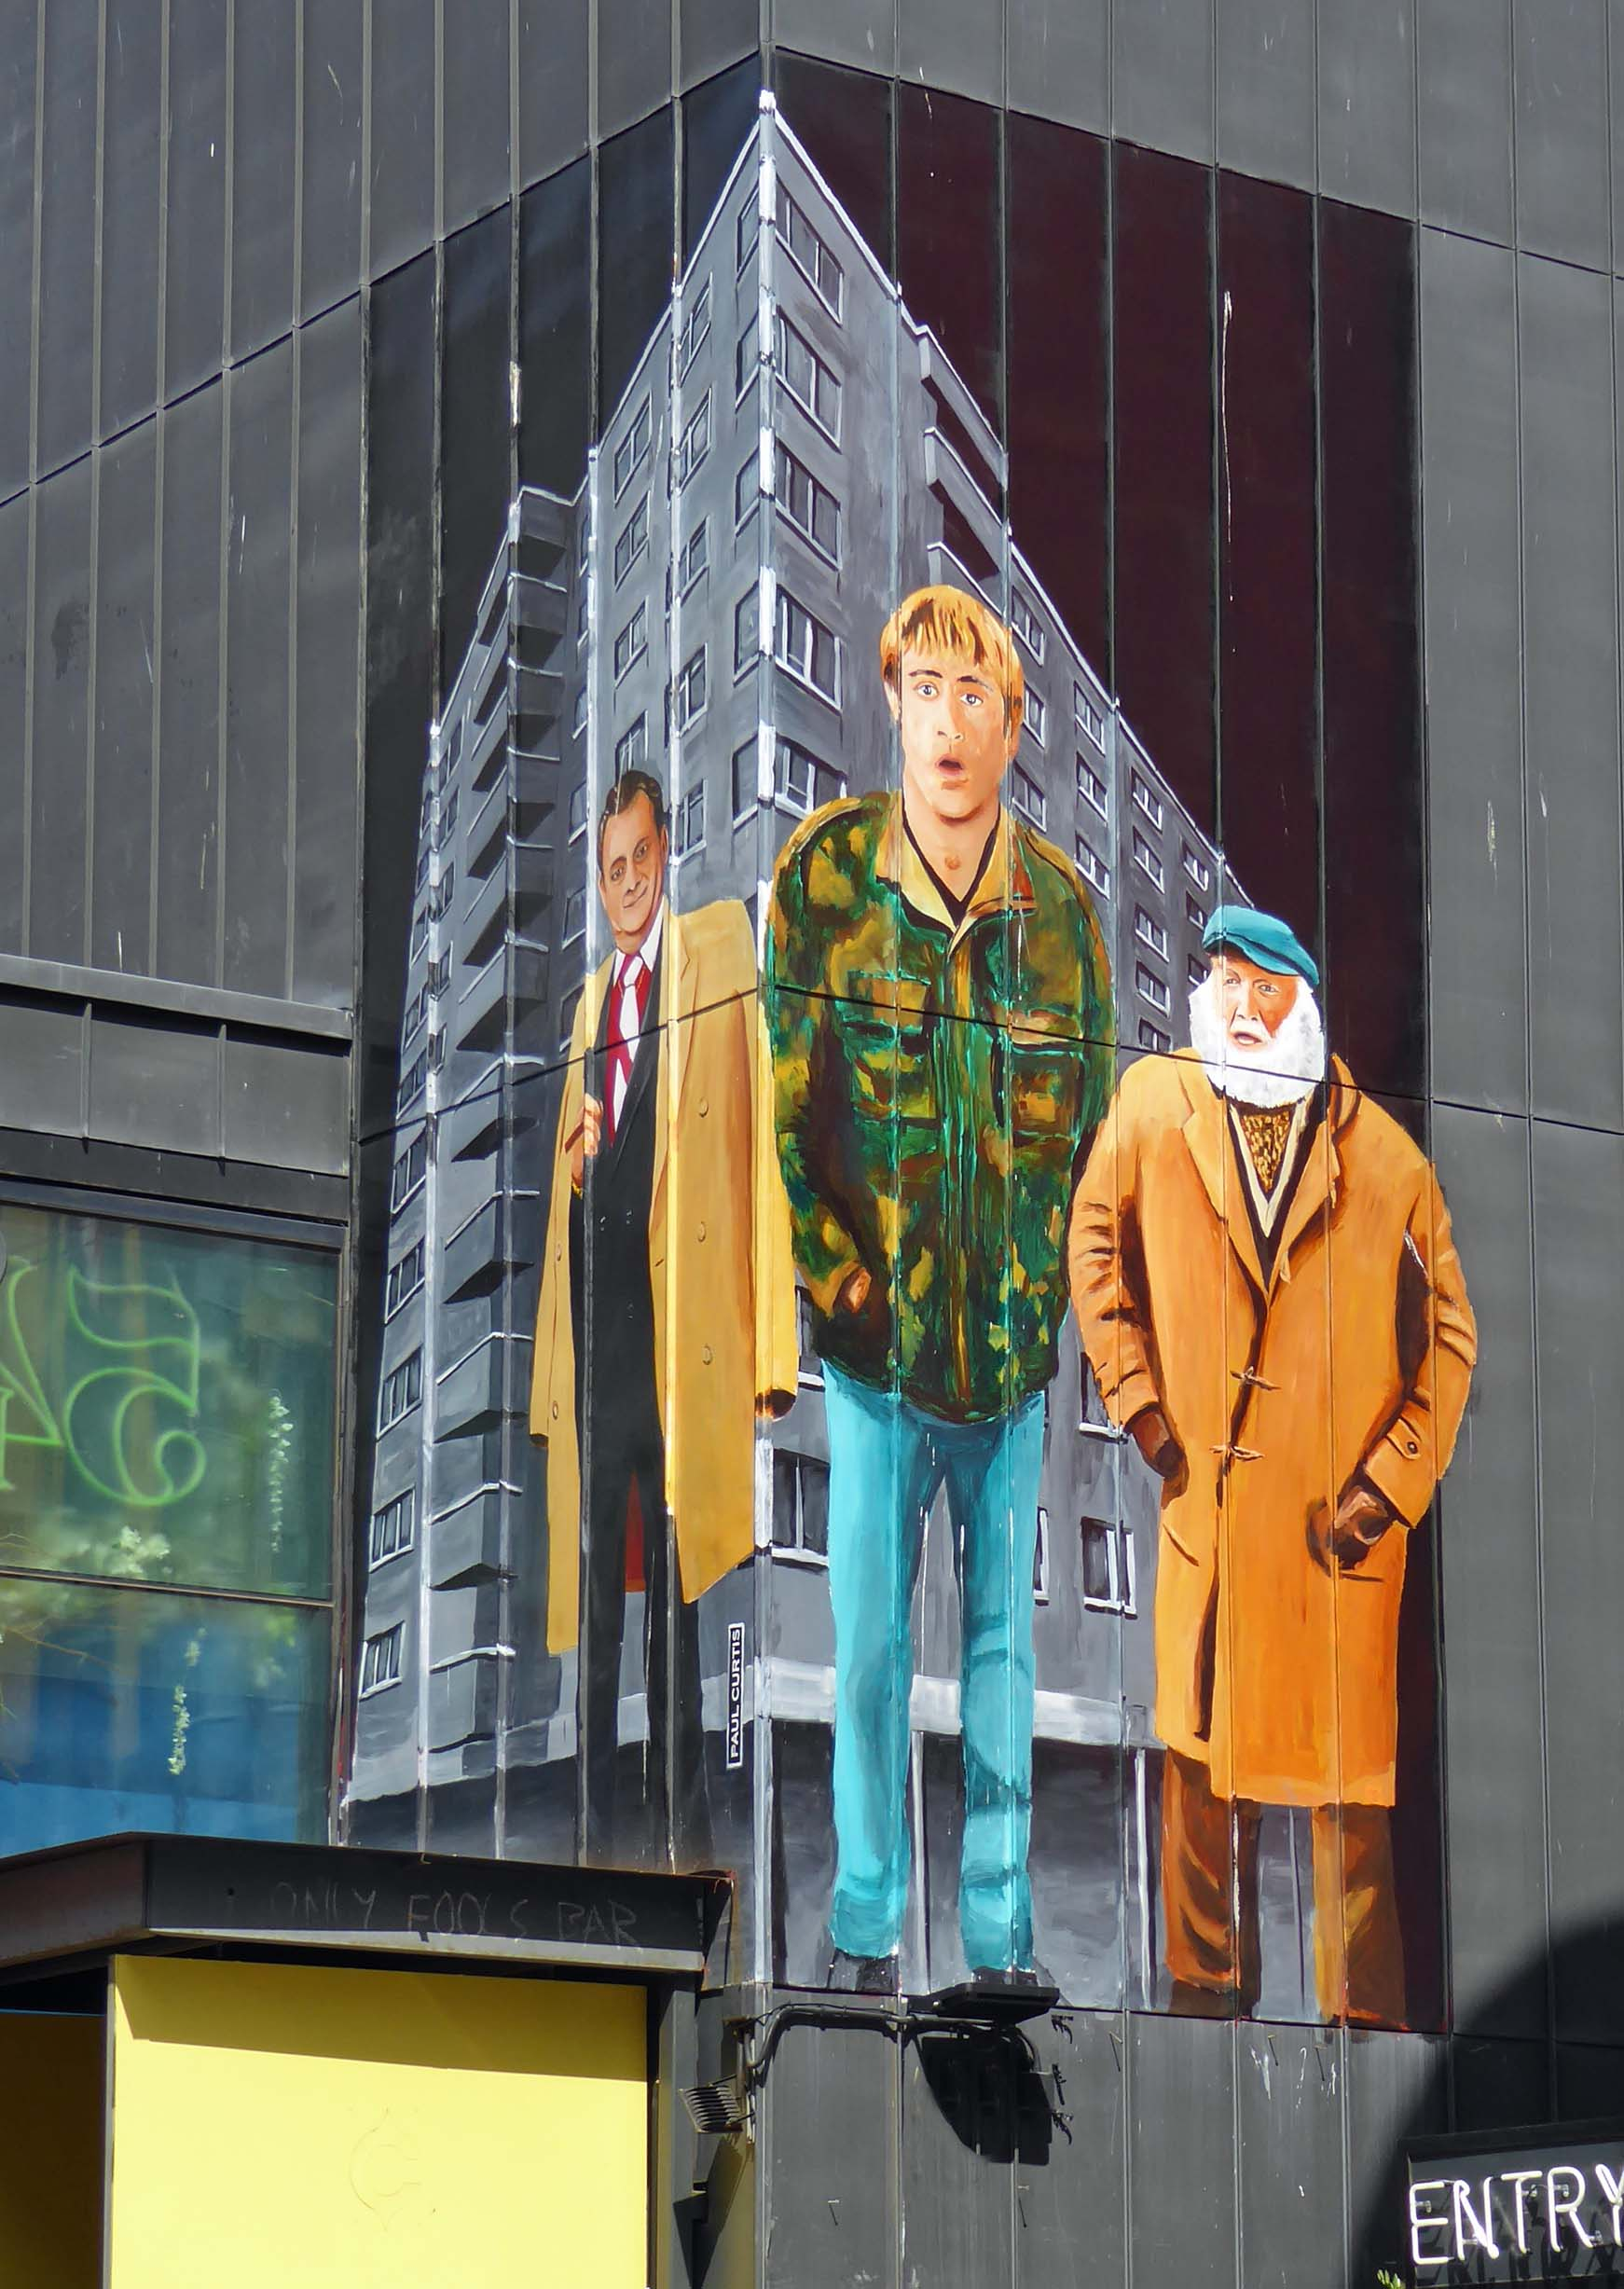 Wall painting of characters from Only Fools and Horses